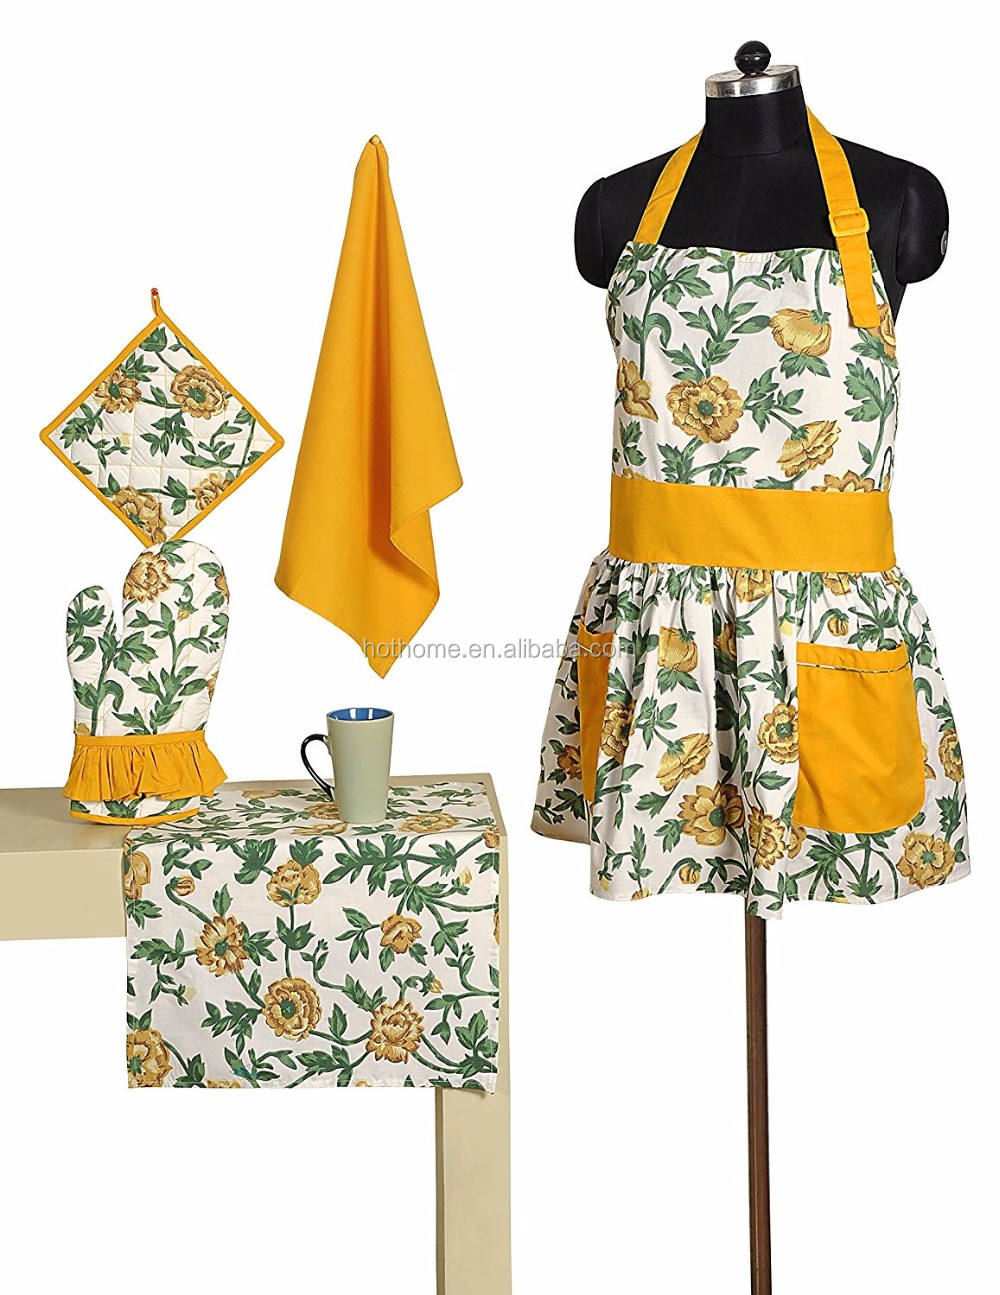 Classical Factory Wholesale Uniform Apron Women Cooking Accessories Pot Holder and Water Resistant Oven Mitt